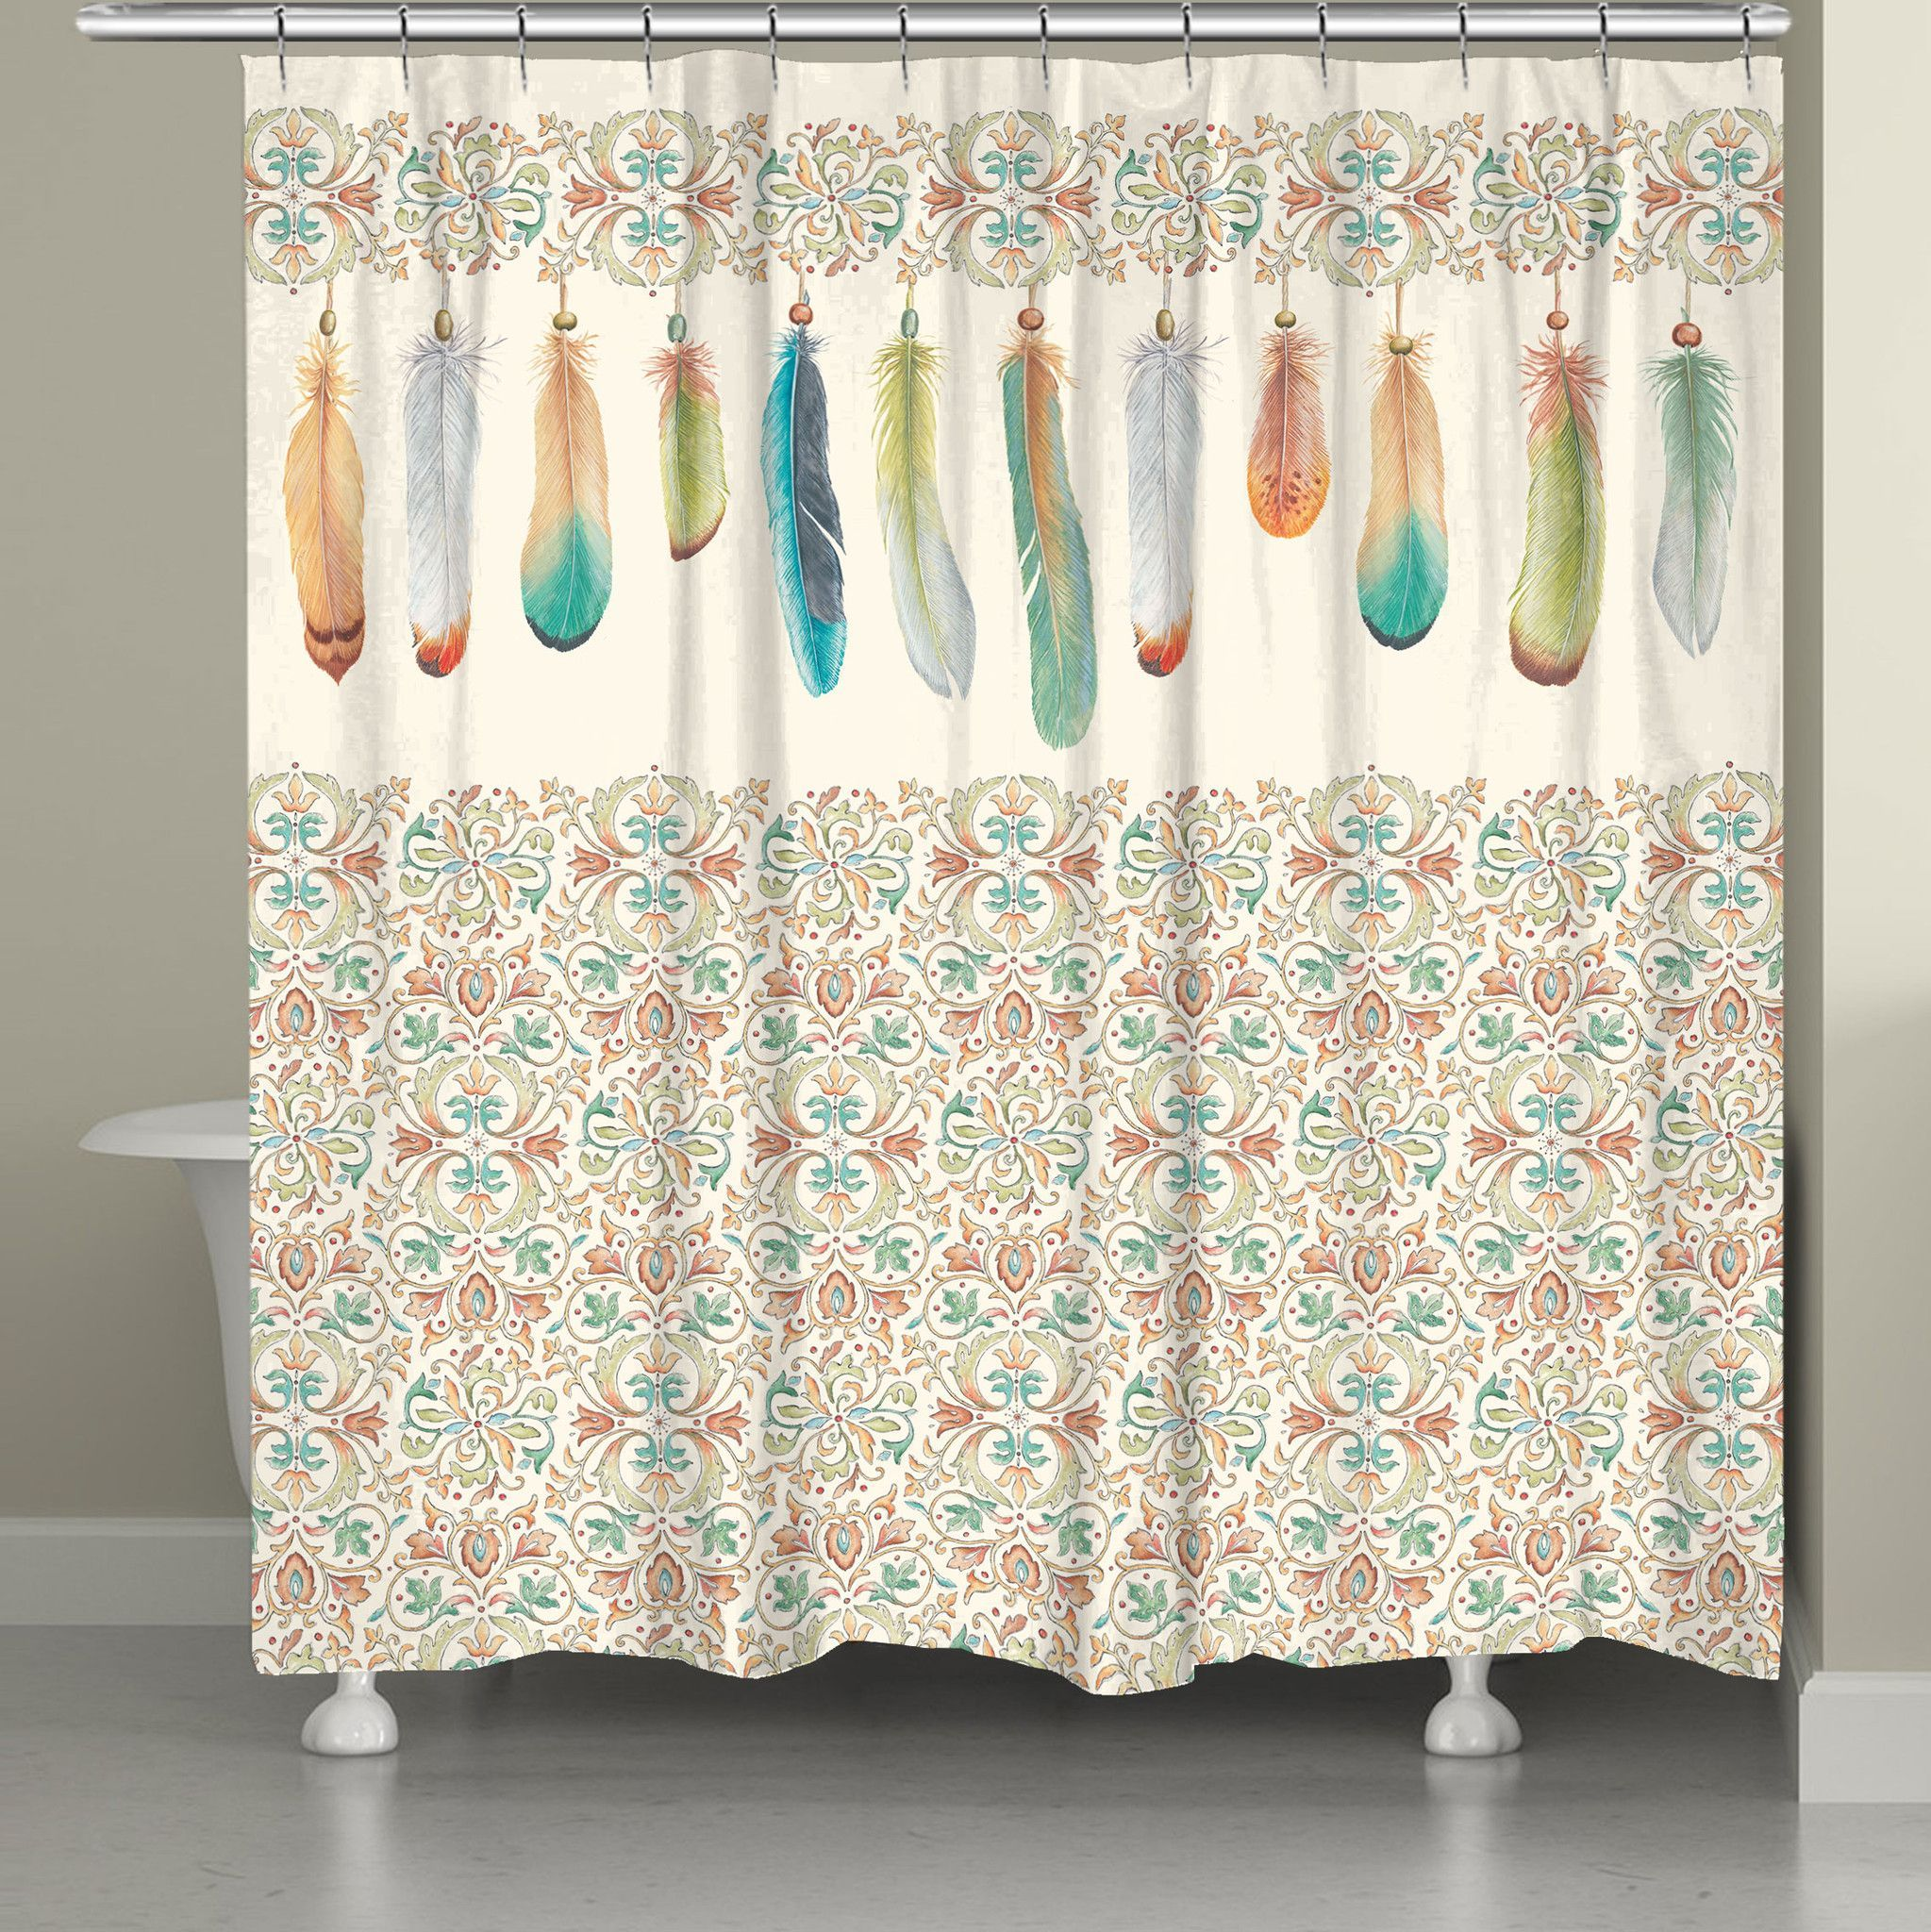 Turquoise Living Room Curtains Feathers Shower Curtain Feathers Products And Living Room Curtains